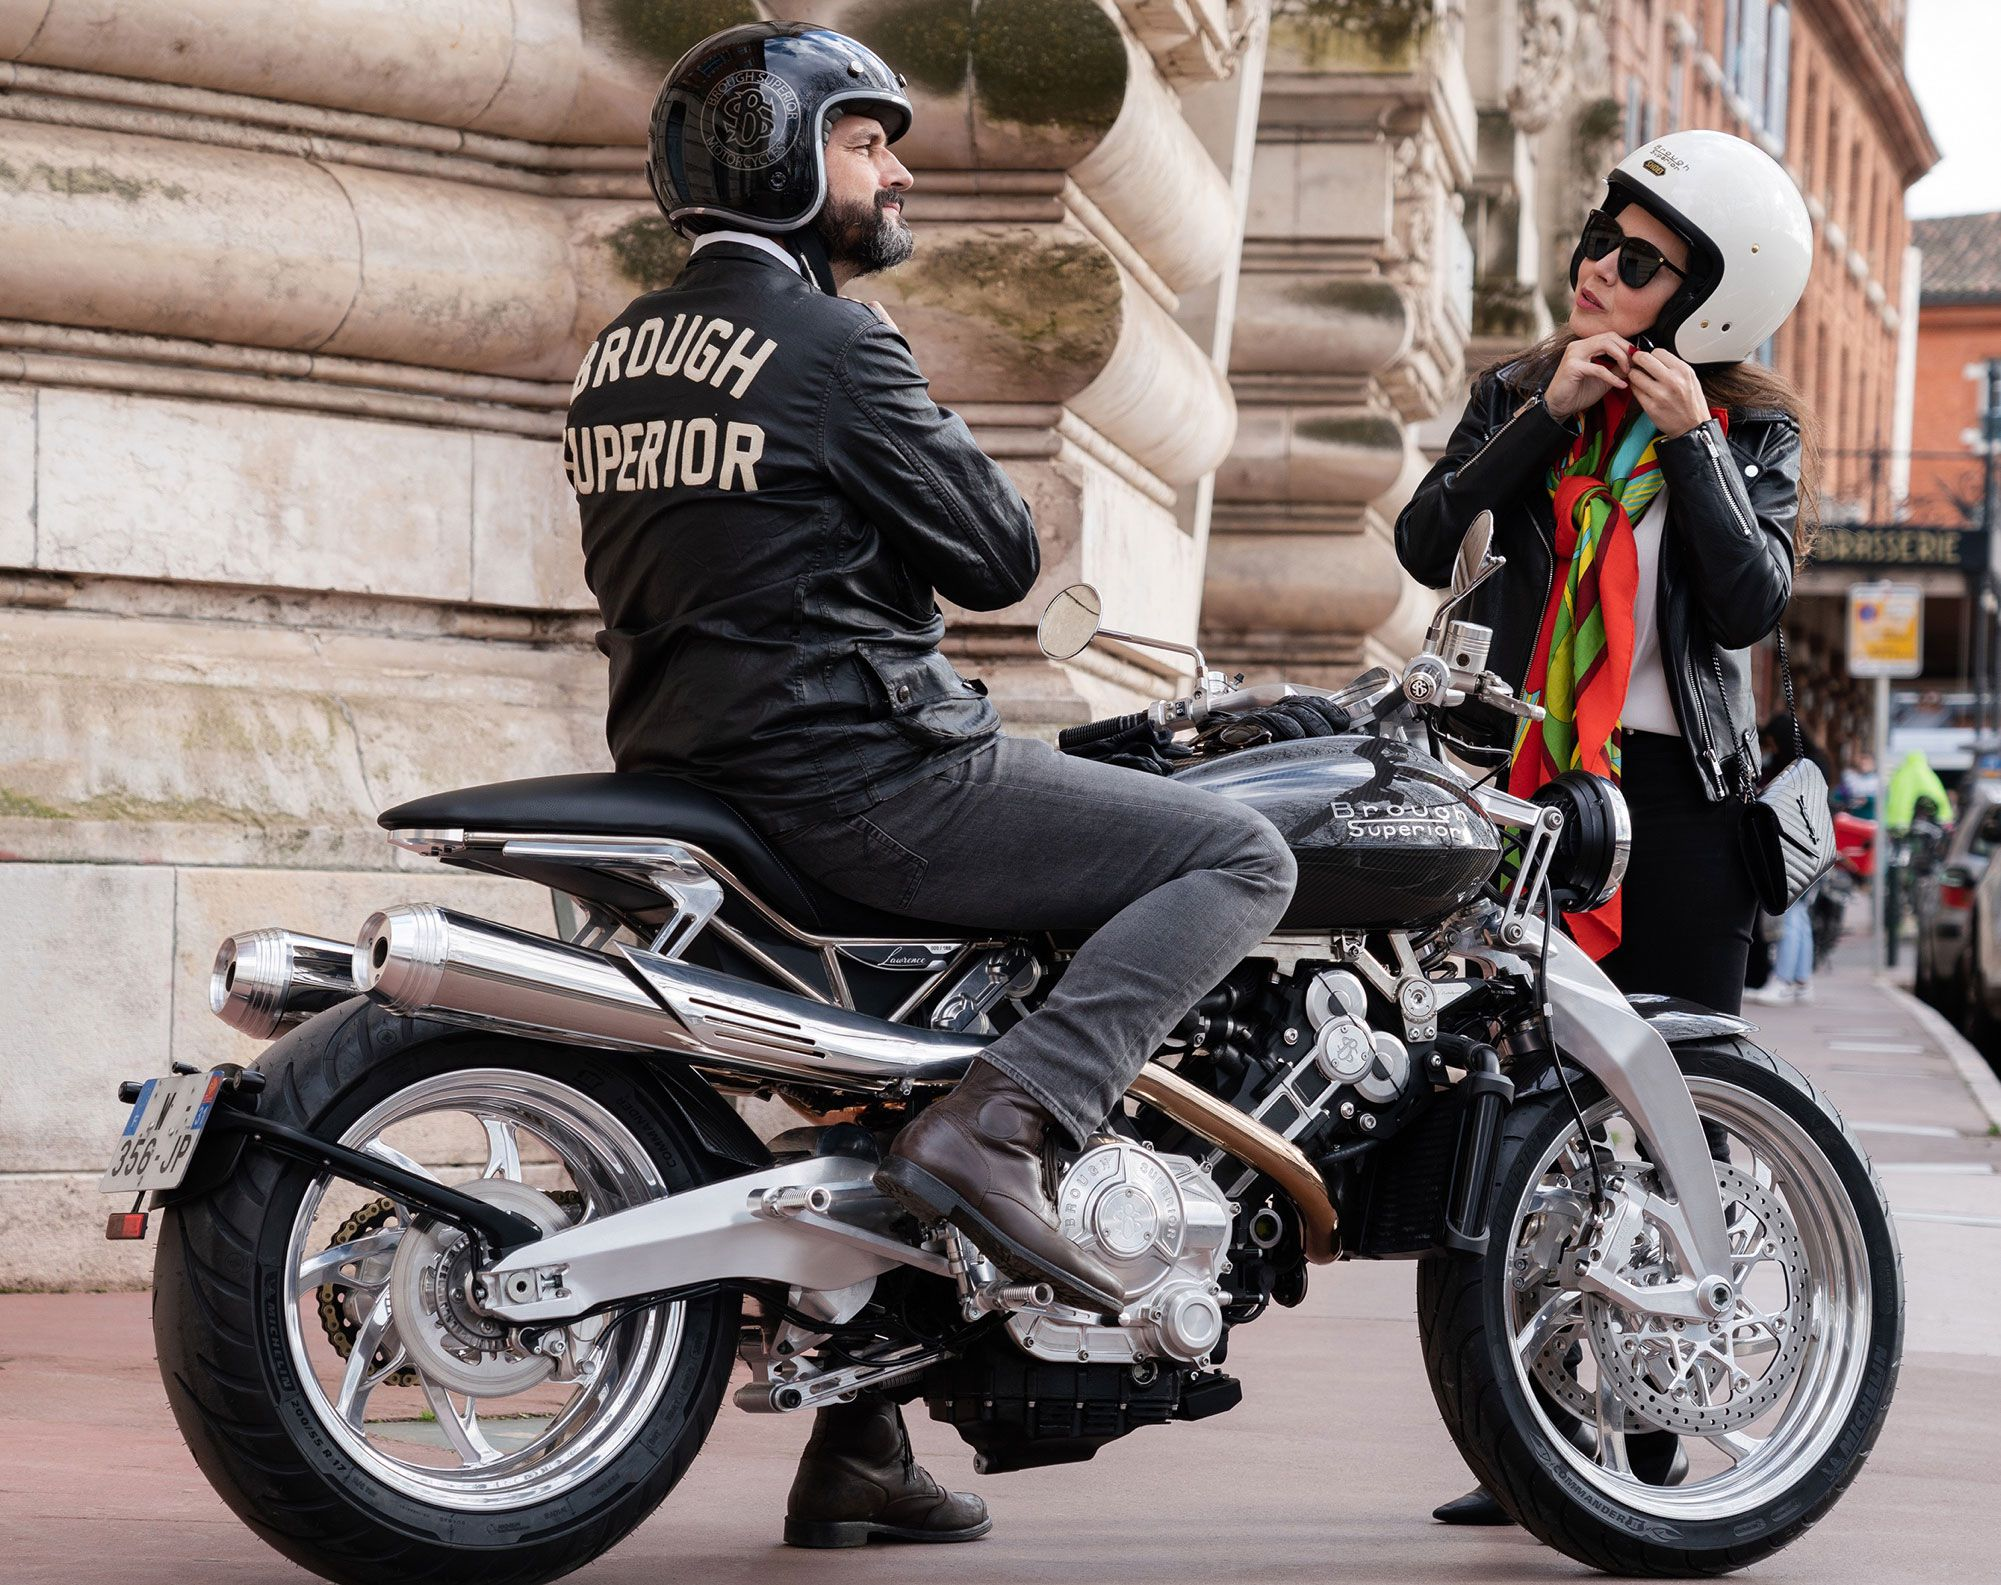 The rider - who some say looks like a French version of Ted Cruz - attempts to convince his unsuspecting lady friend that the brief pillion might actually be comfortable.